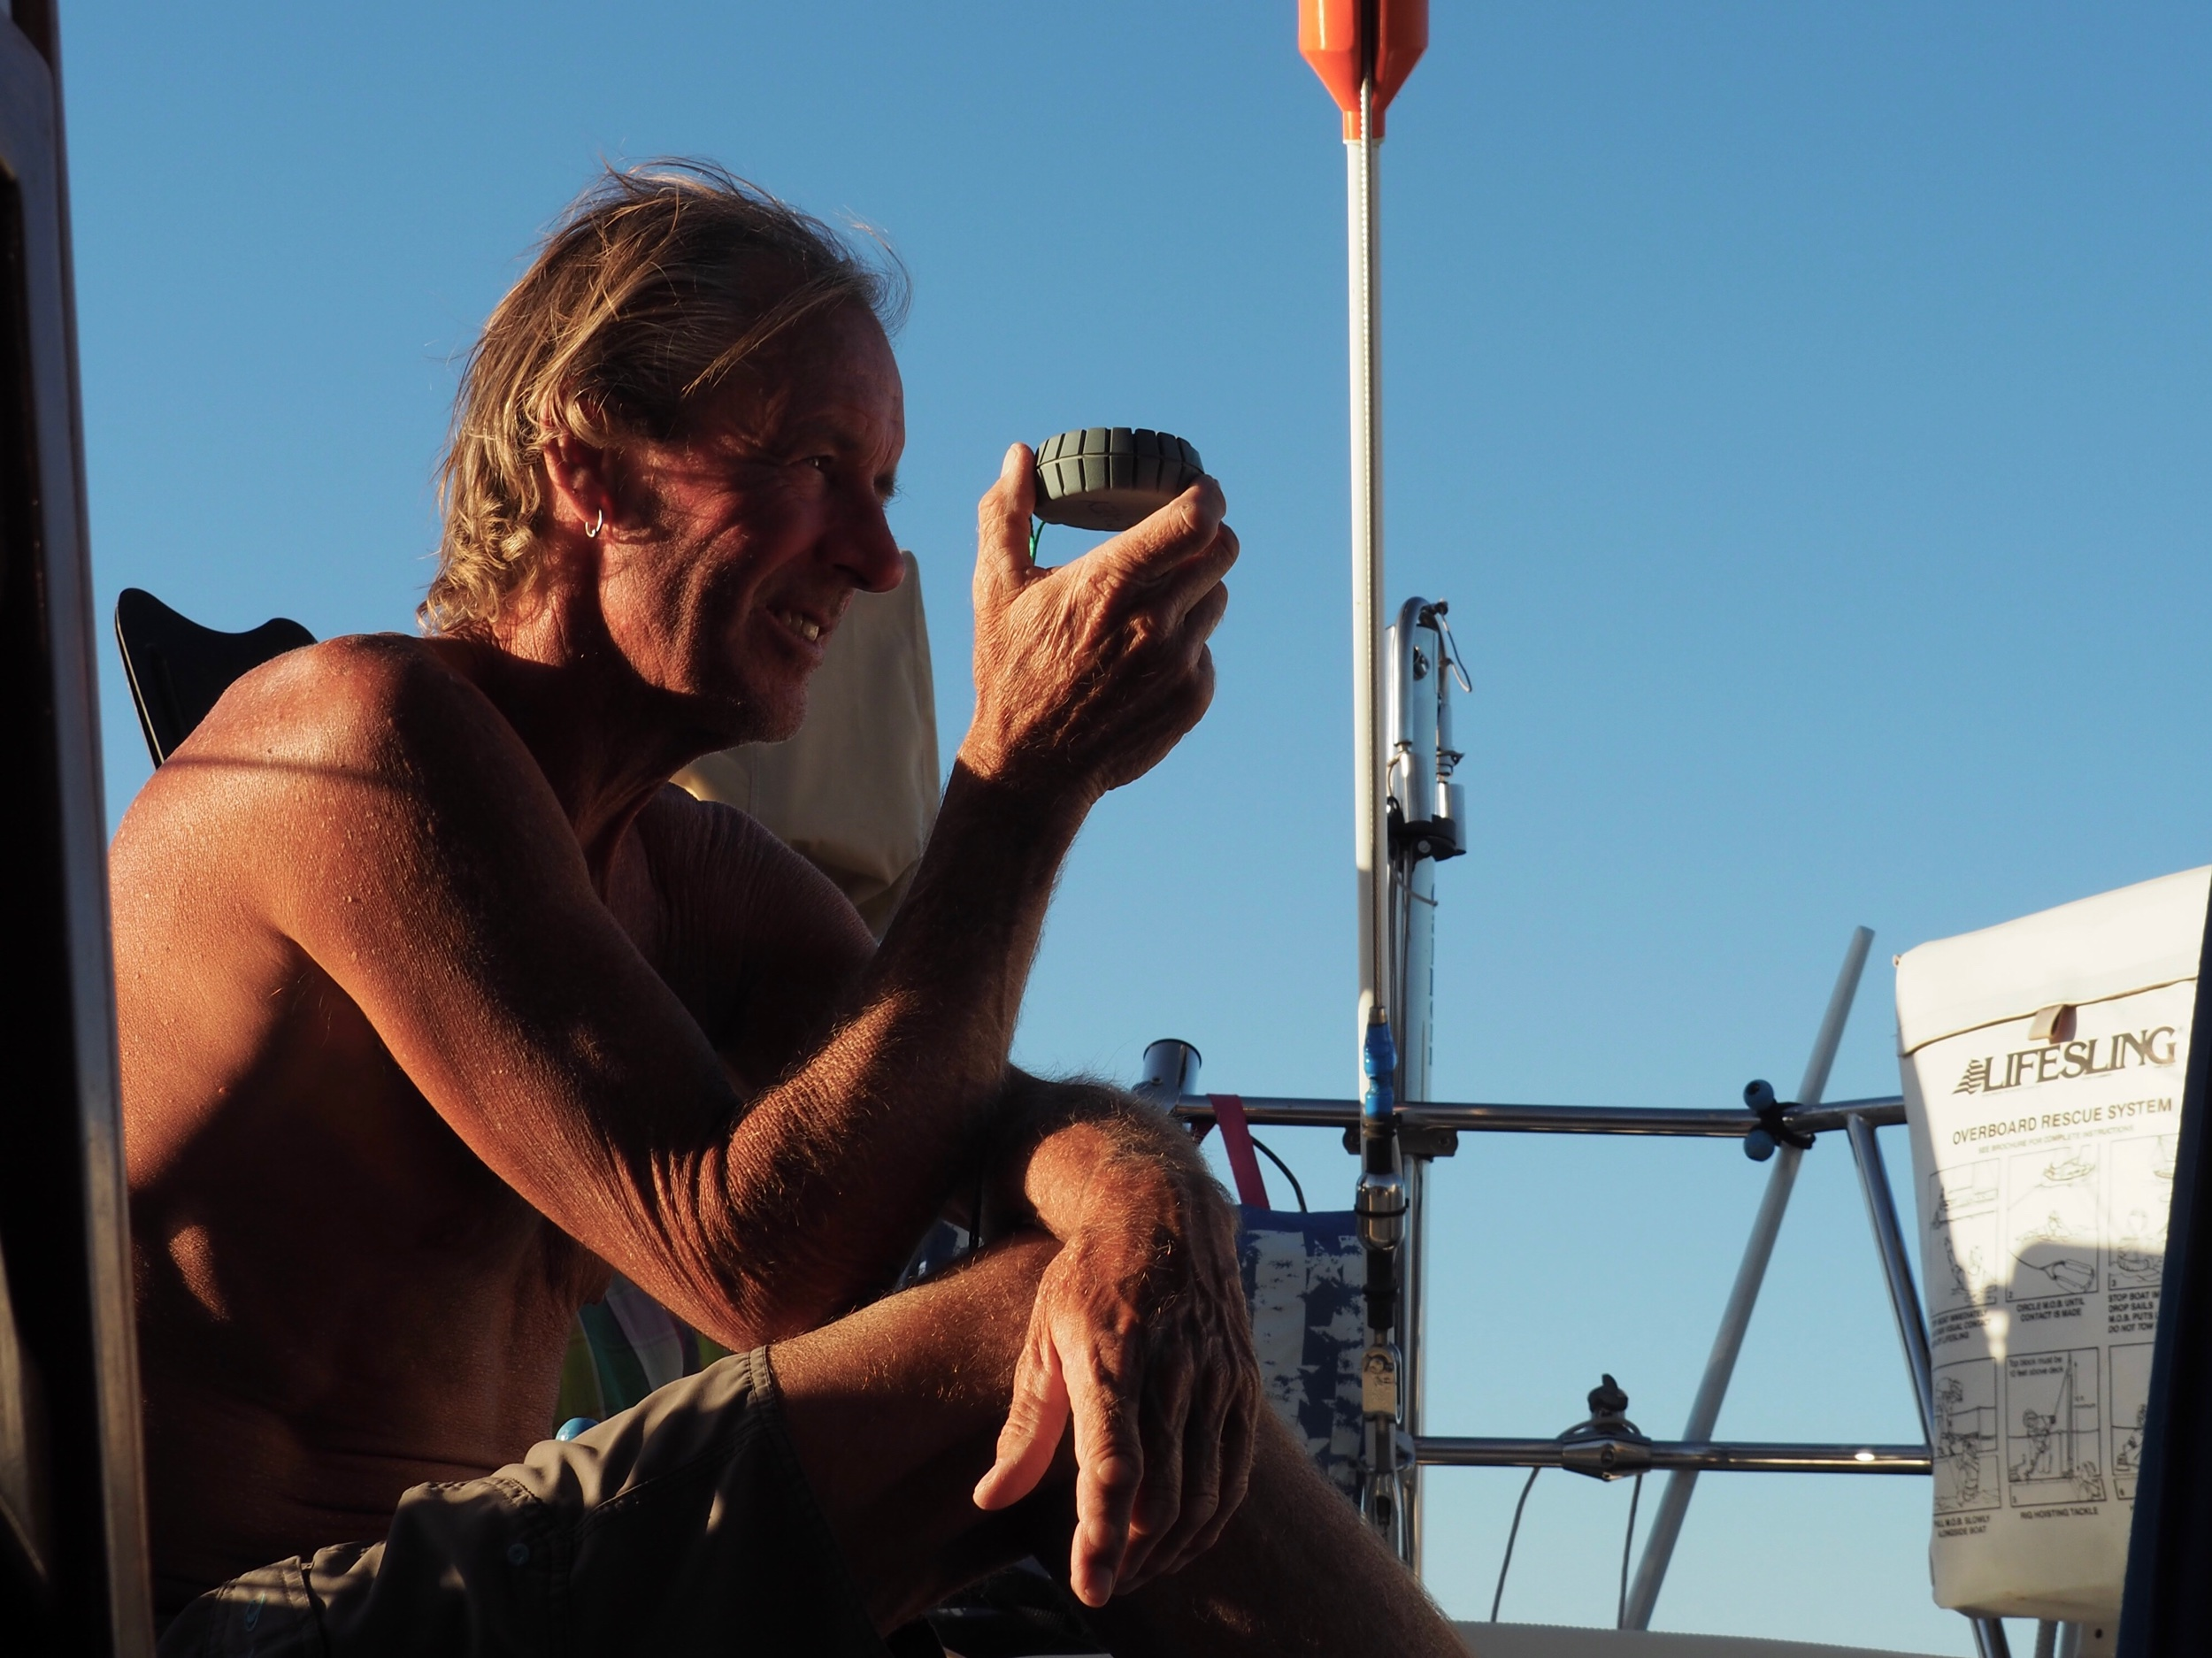 The good captain checks his bearings as the evening westerlies start whipping through the anchorage.